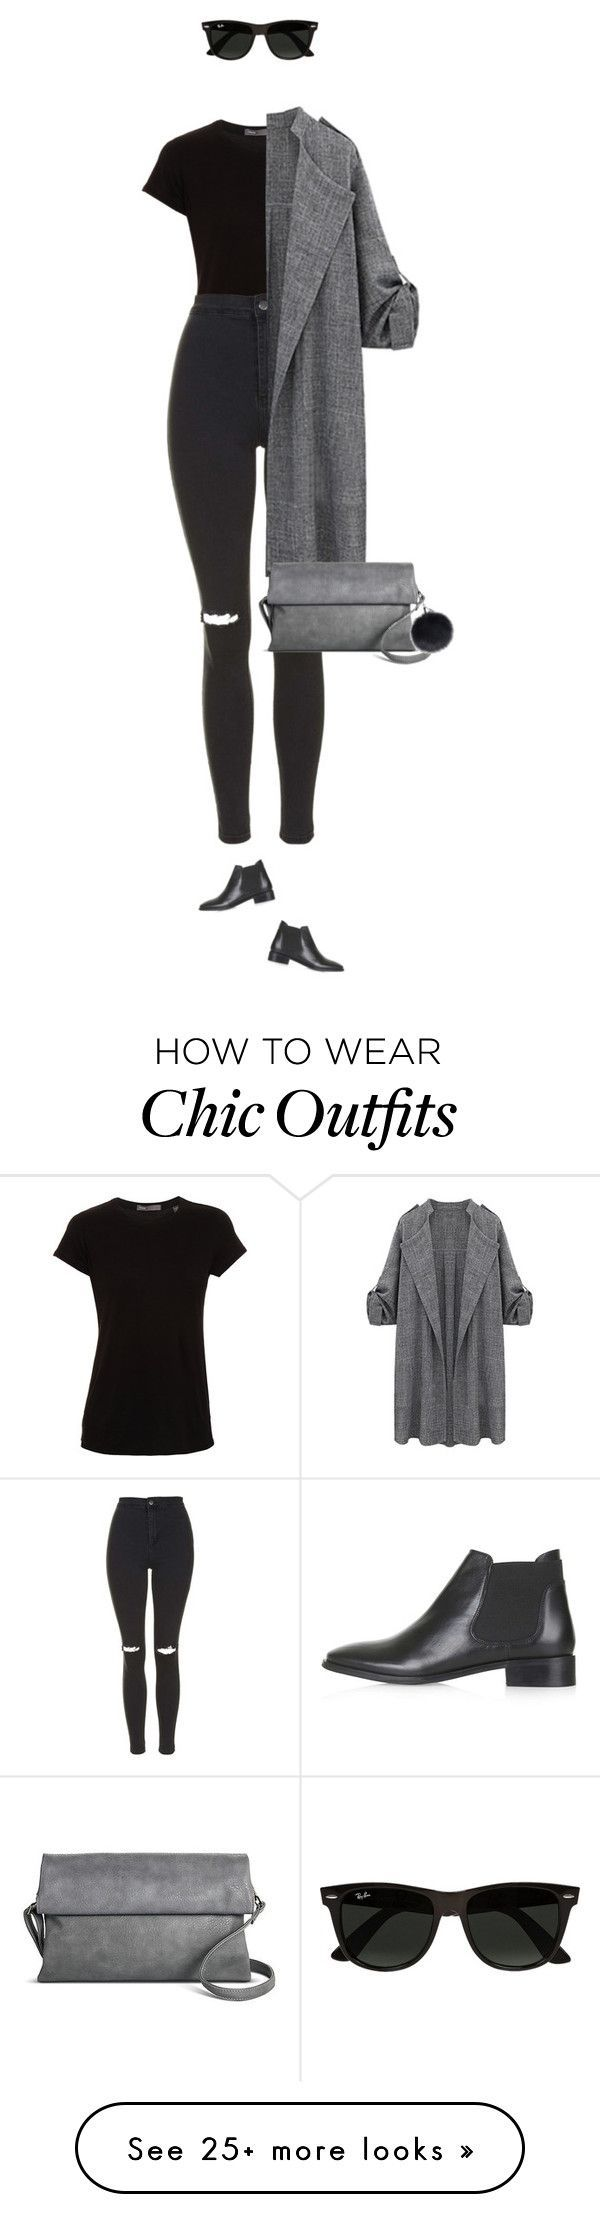 Everyday chic look ! by azzra on Polyvore featuring Vince, Topshop, Street Level, Ray-Ban, womens clothing, women, female, woman, misses and juniors